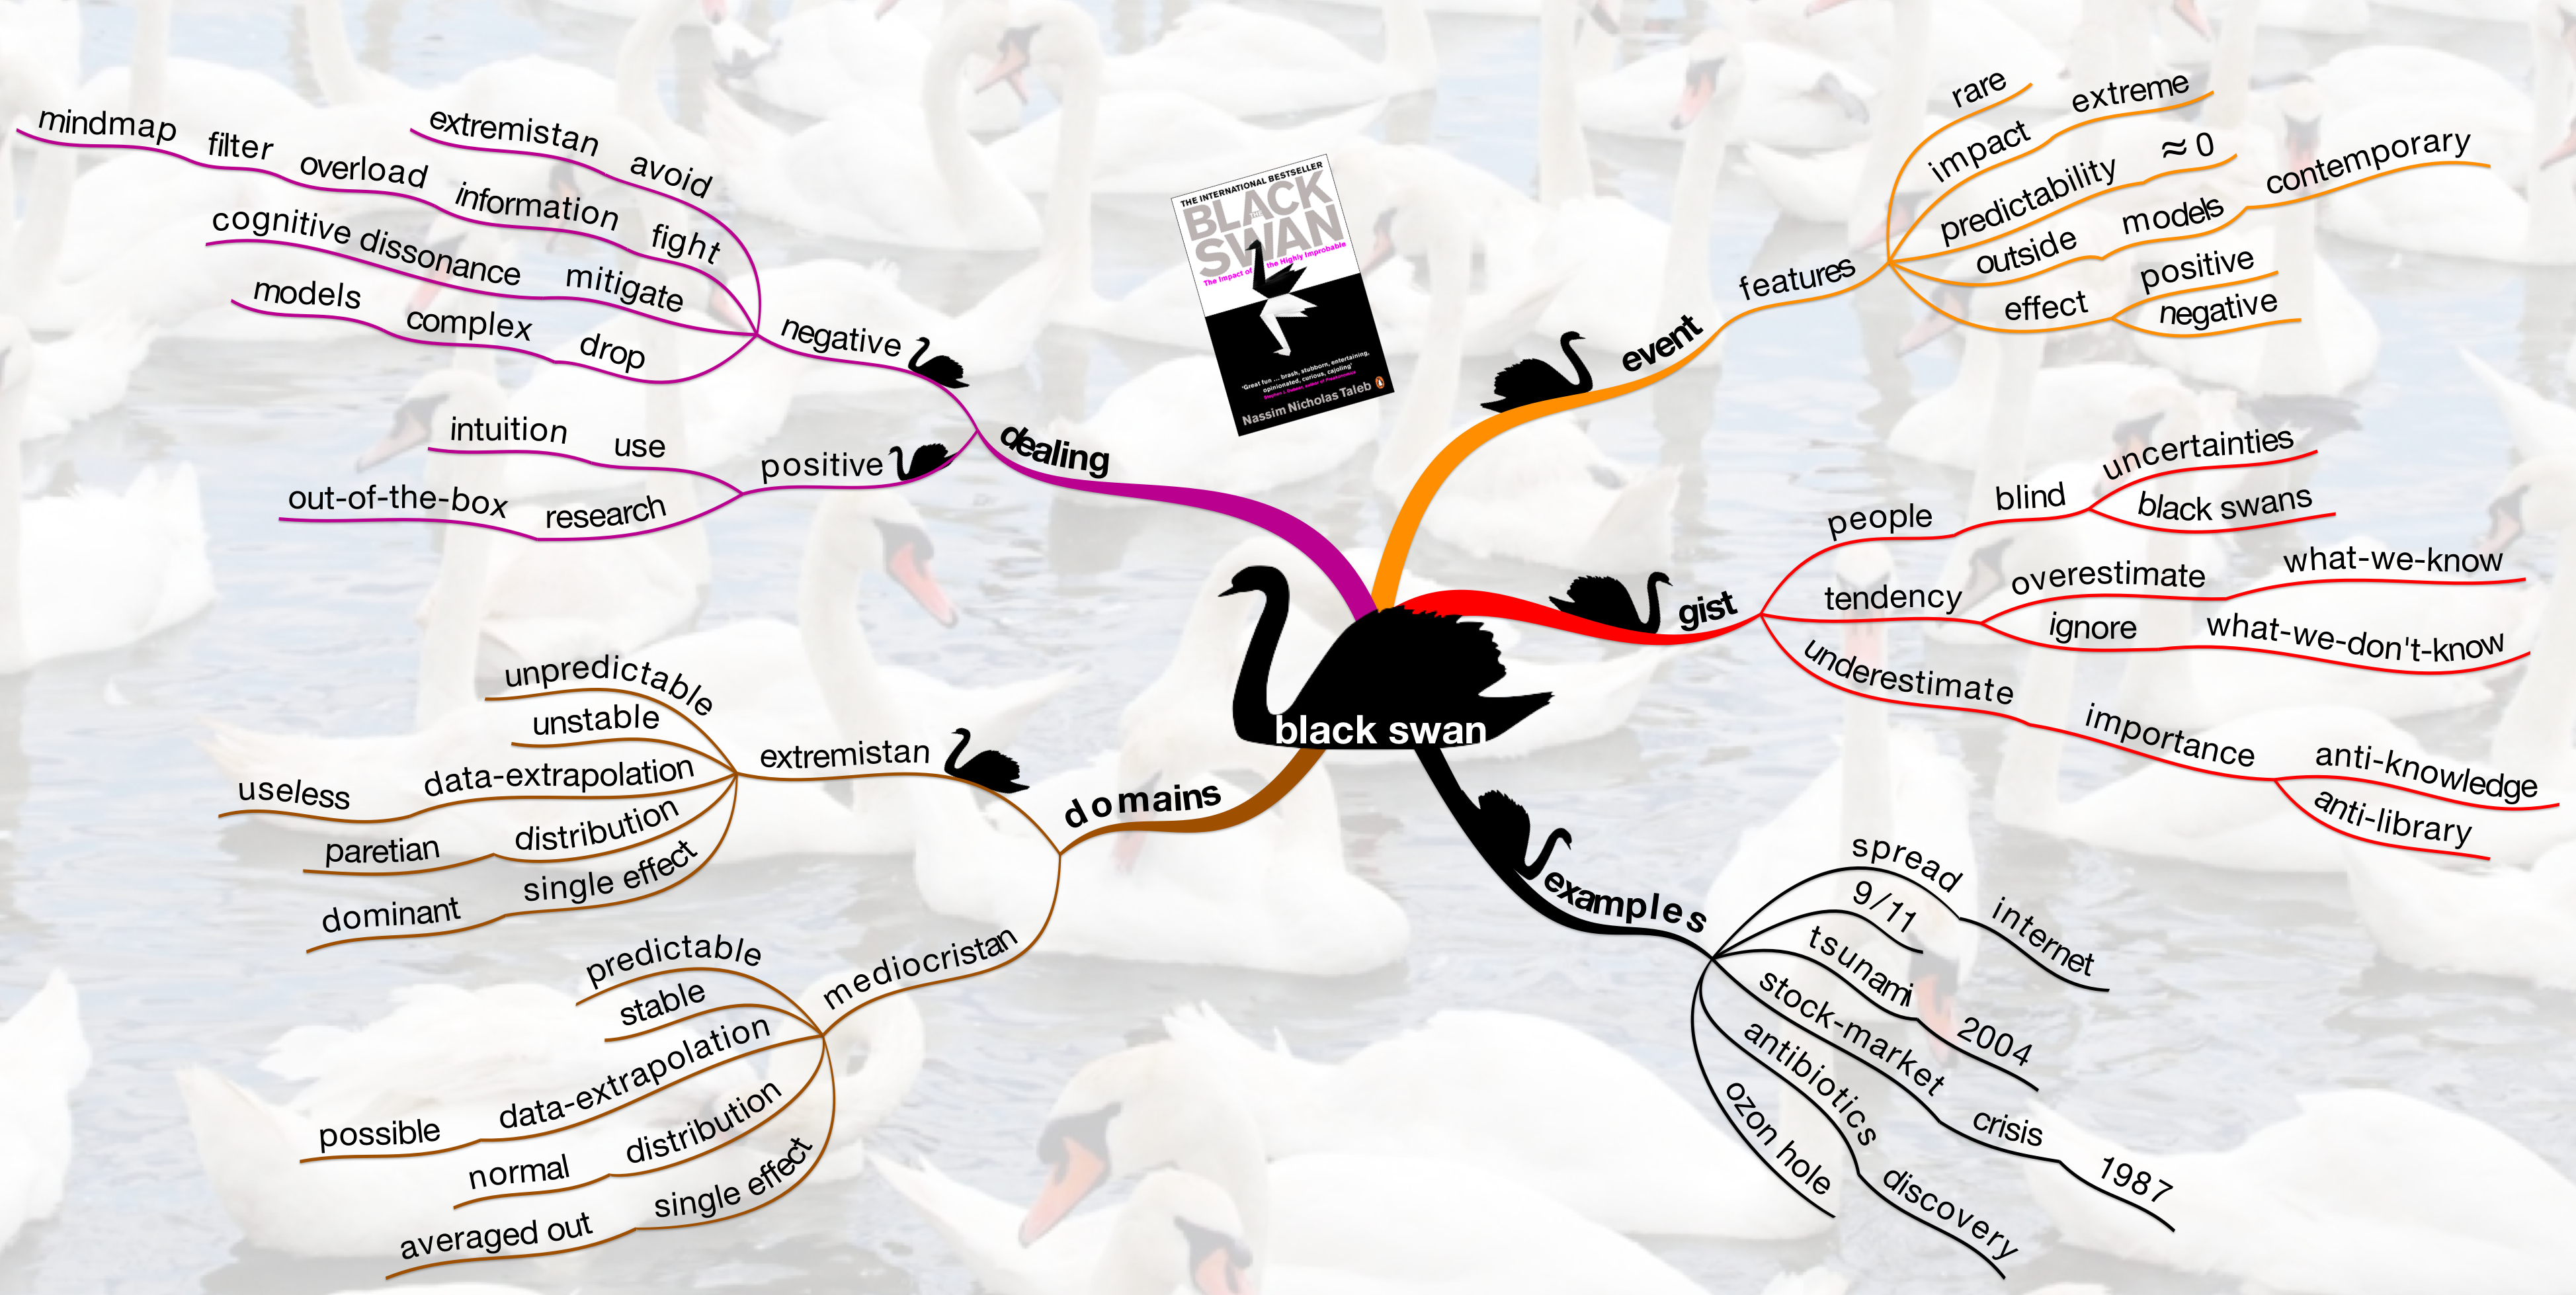 http://mastermindmaps.files.wordpress.com/2010/11/black-swan1.jpg